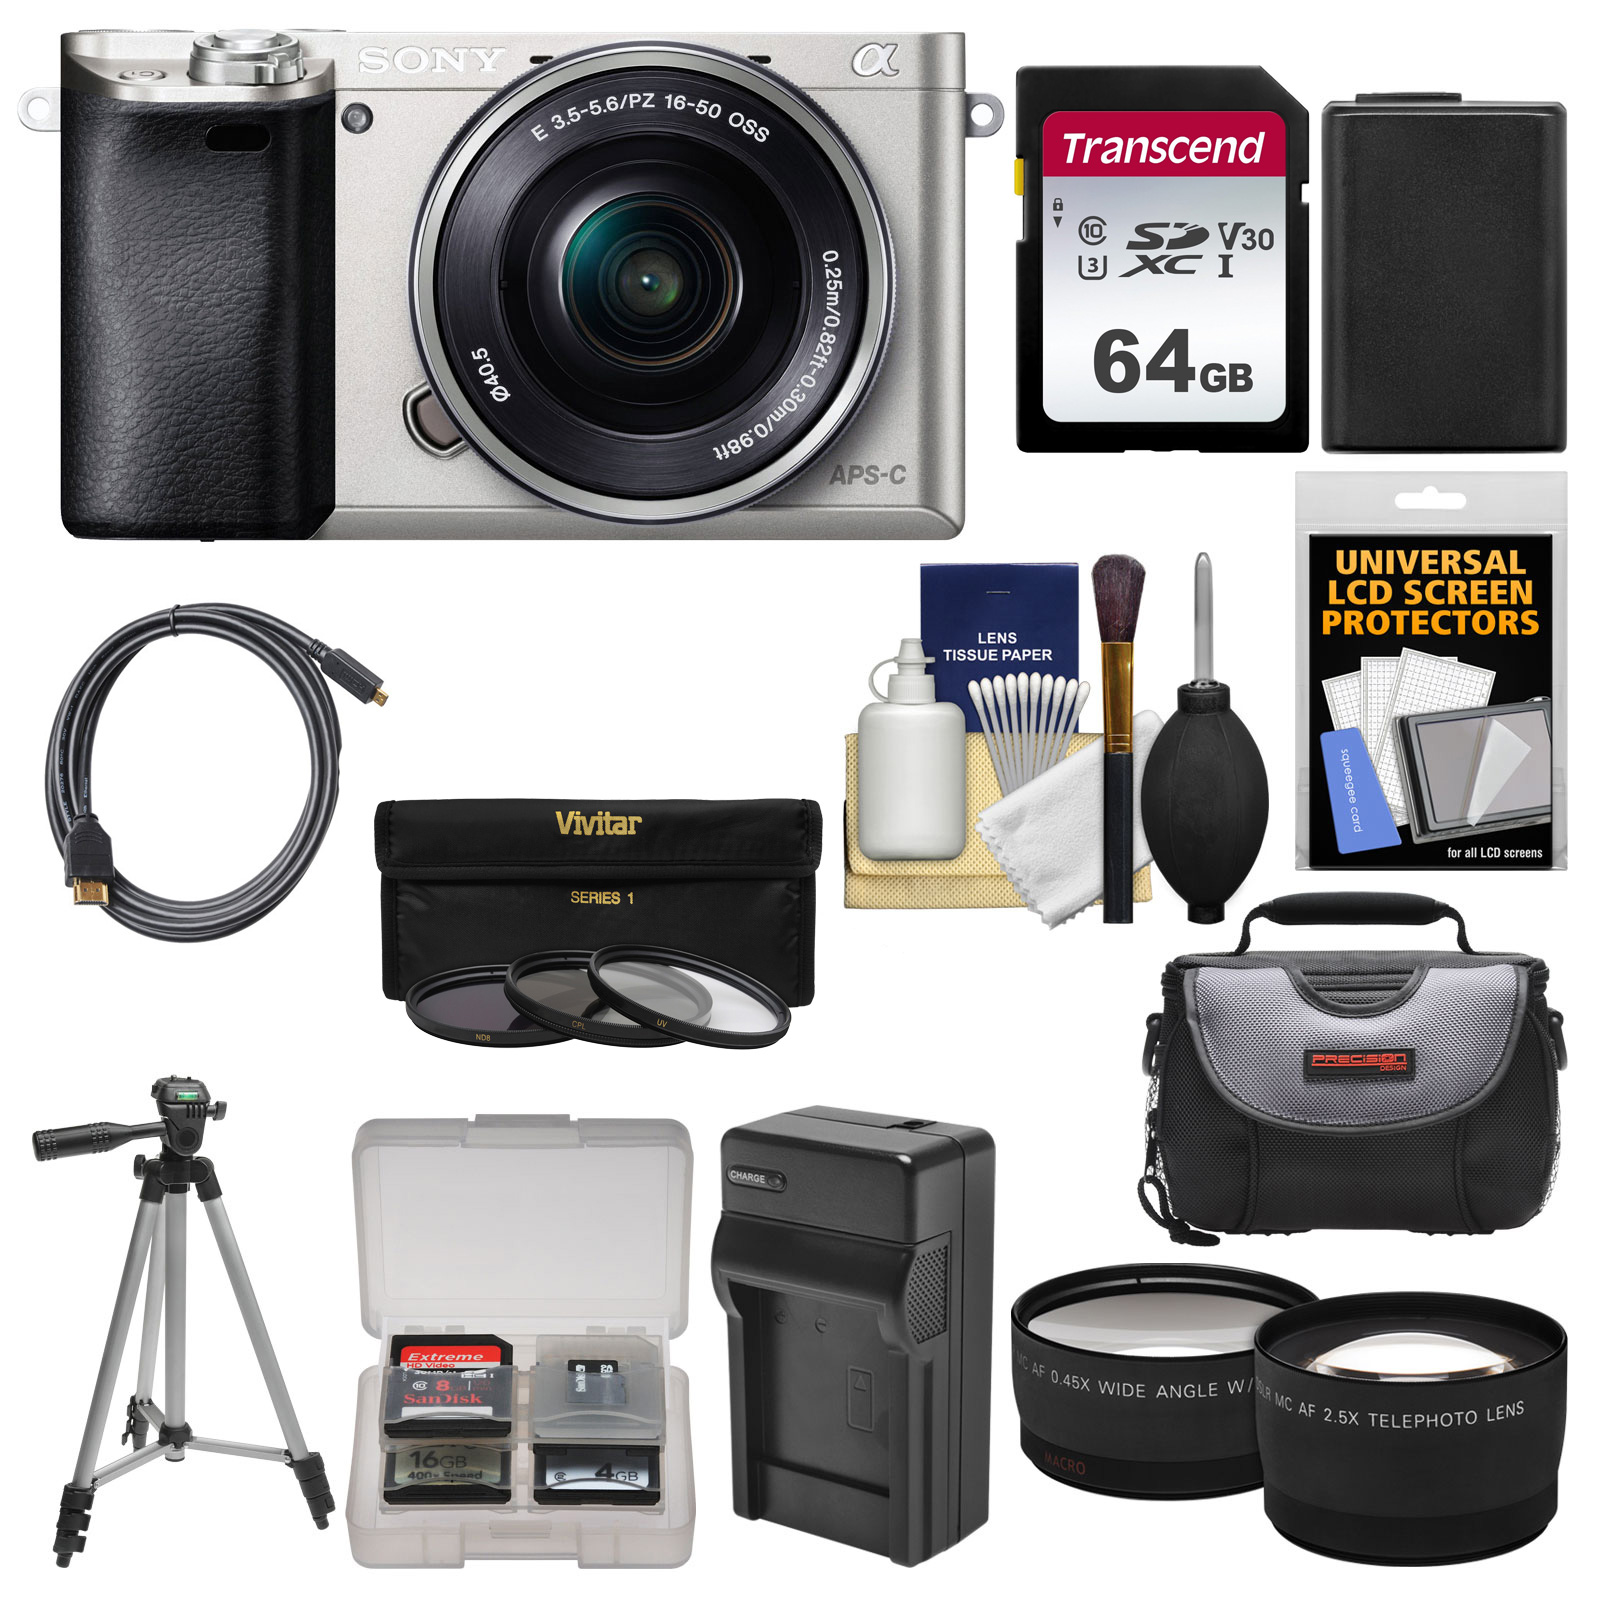 Sony Alpha A6000 Wi-Fi Digital Camera + 16-50mm Lens (Silver) with 64GB Card + Case + Battery/Charger + Tripod + Tele/Wide Lens Kit